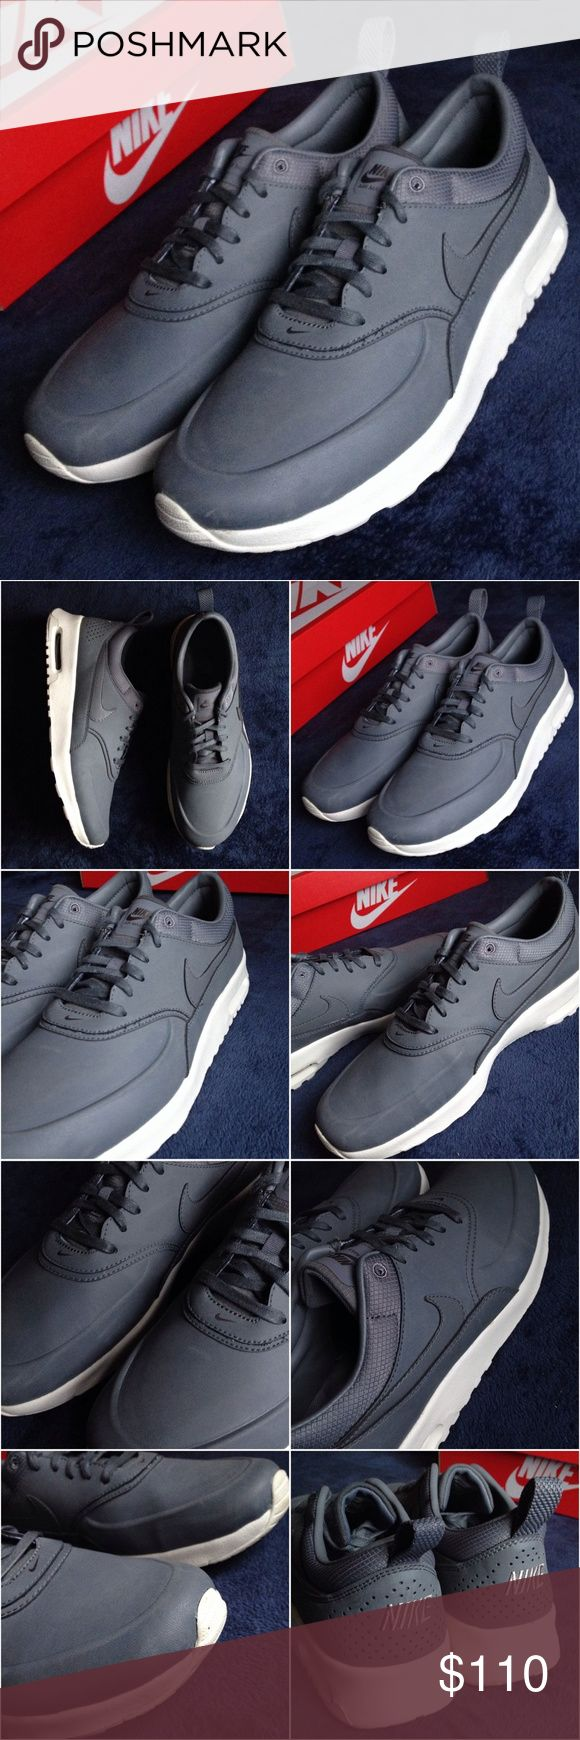 Nike Air Max Thea Premium Cool Grey Sneakers Brand: Nike Style: Air Max Thea Premium Size: US 9 Color: Cool Grey  These sneakers are in great condition; worn only once. Nike Shoes Sneakers